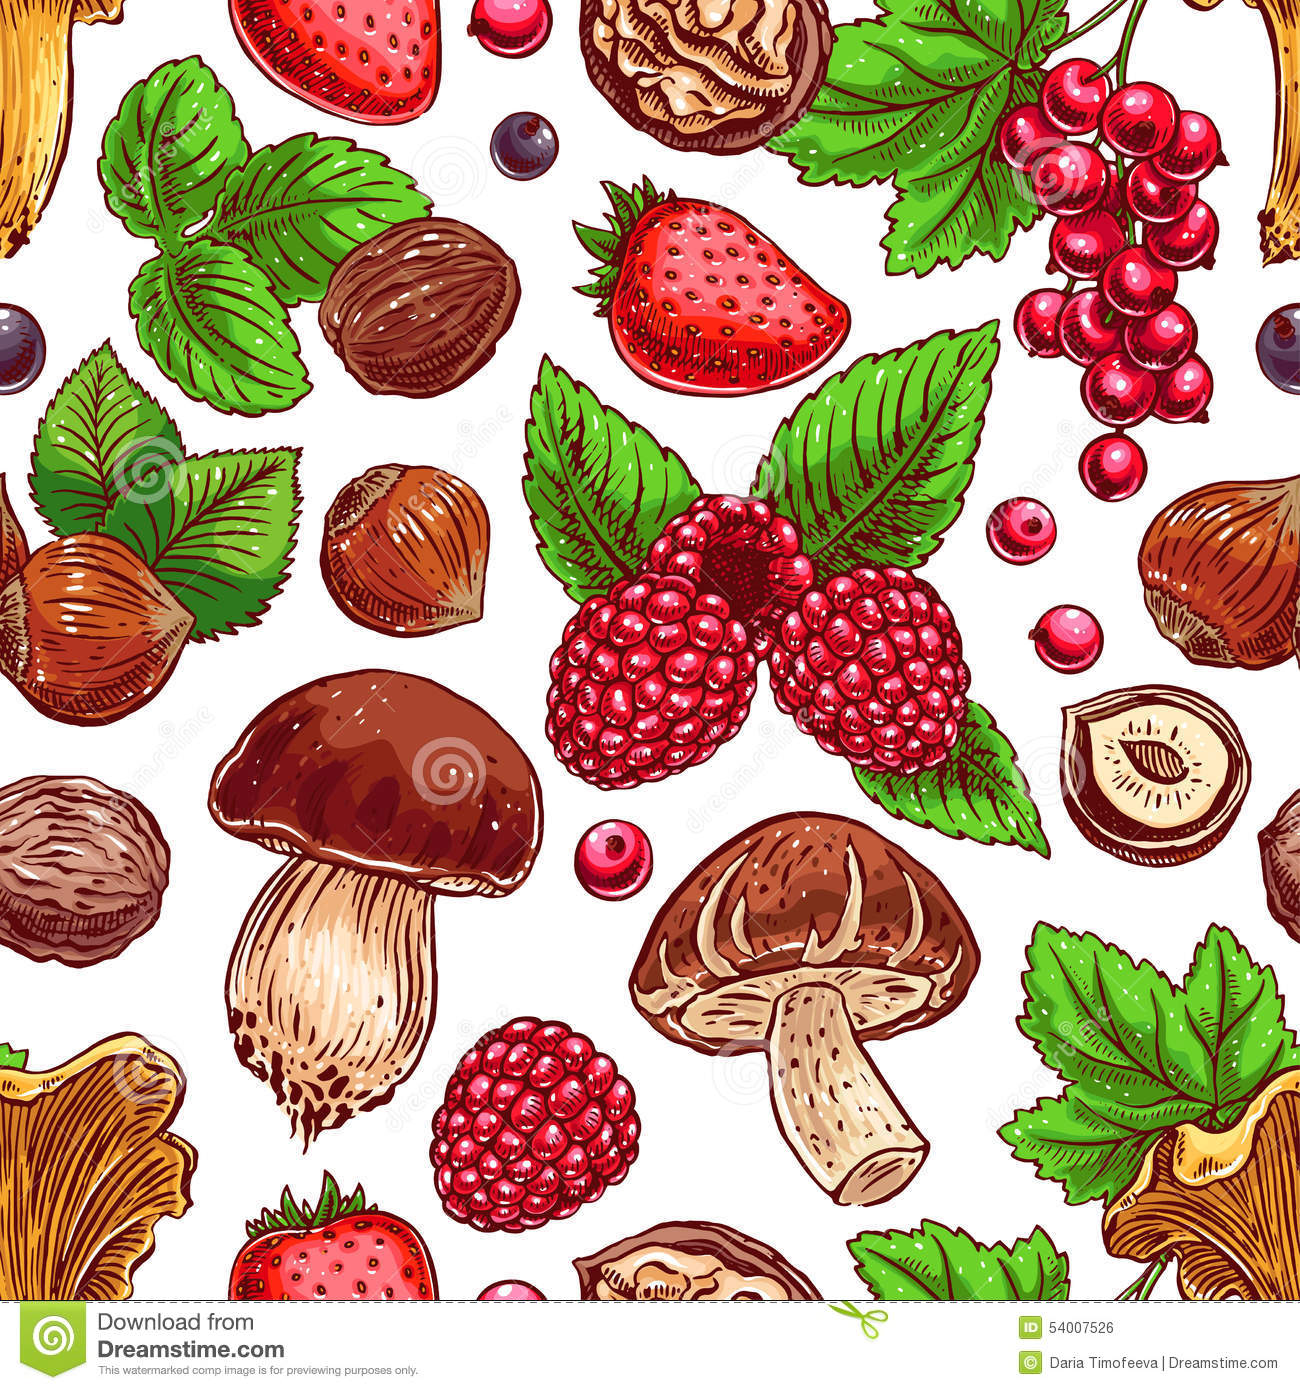 Background With Colorful Berries, Nuts And Mushrooms Stock Vector.